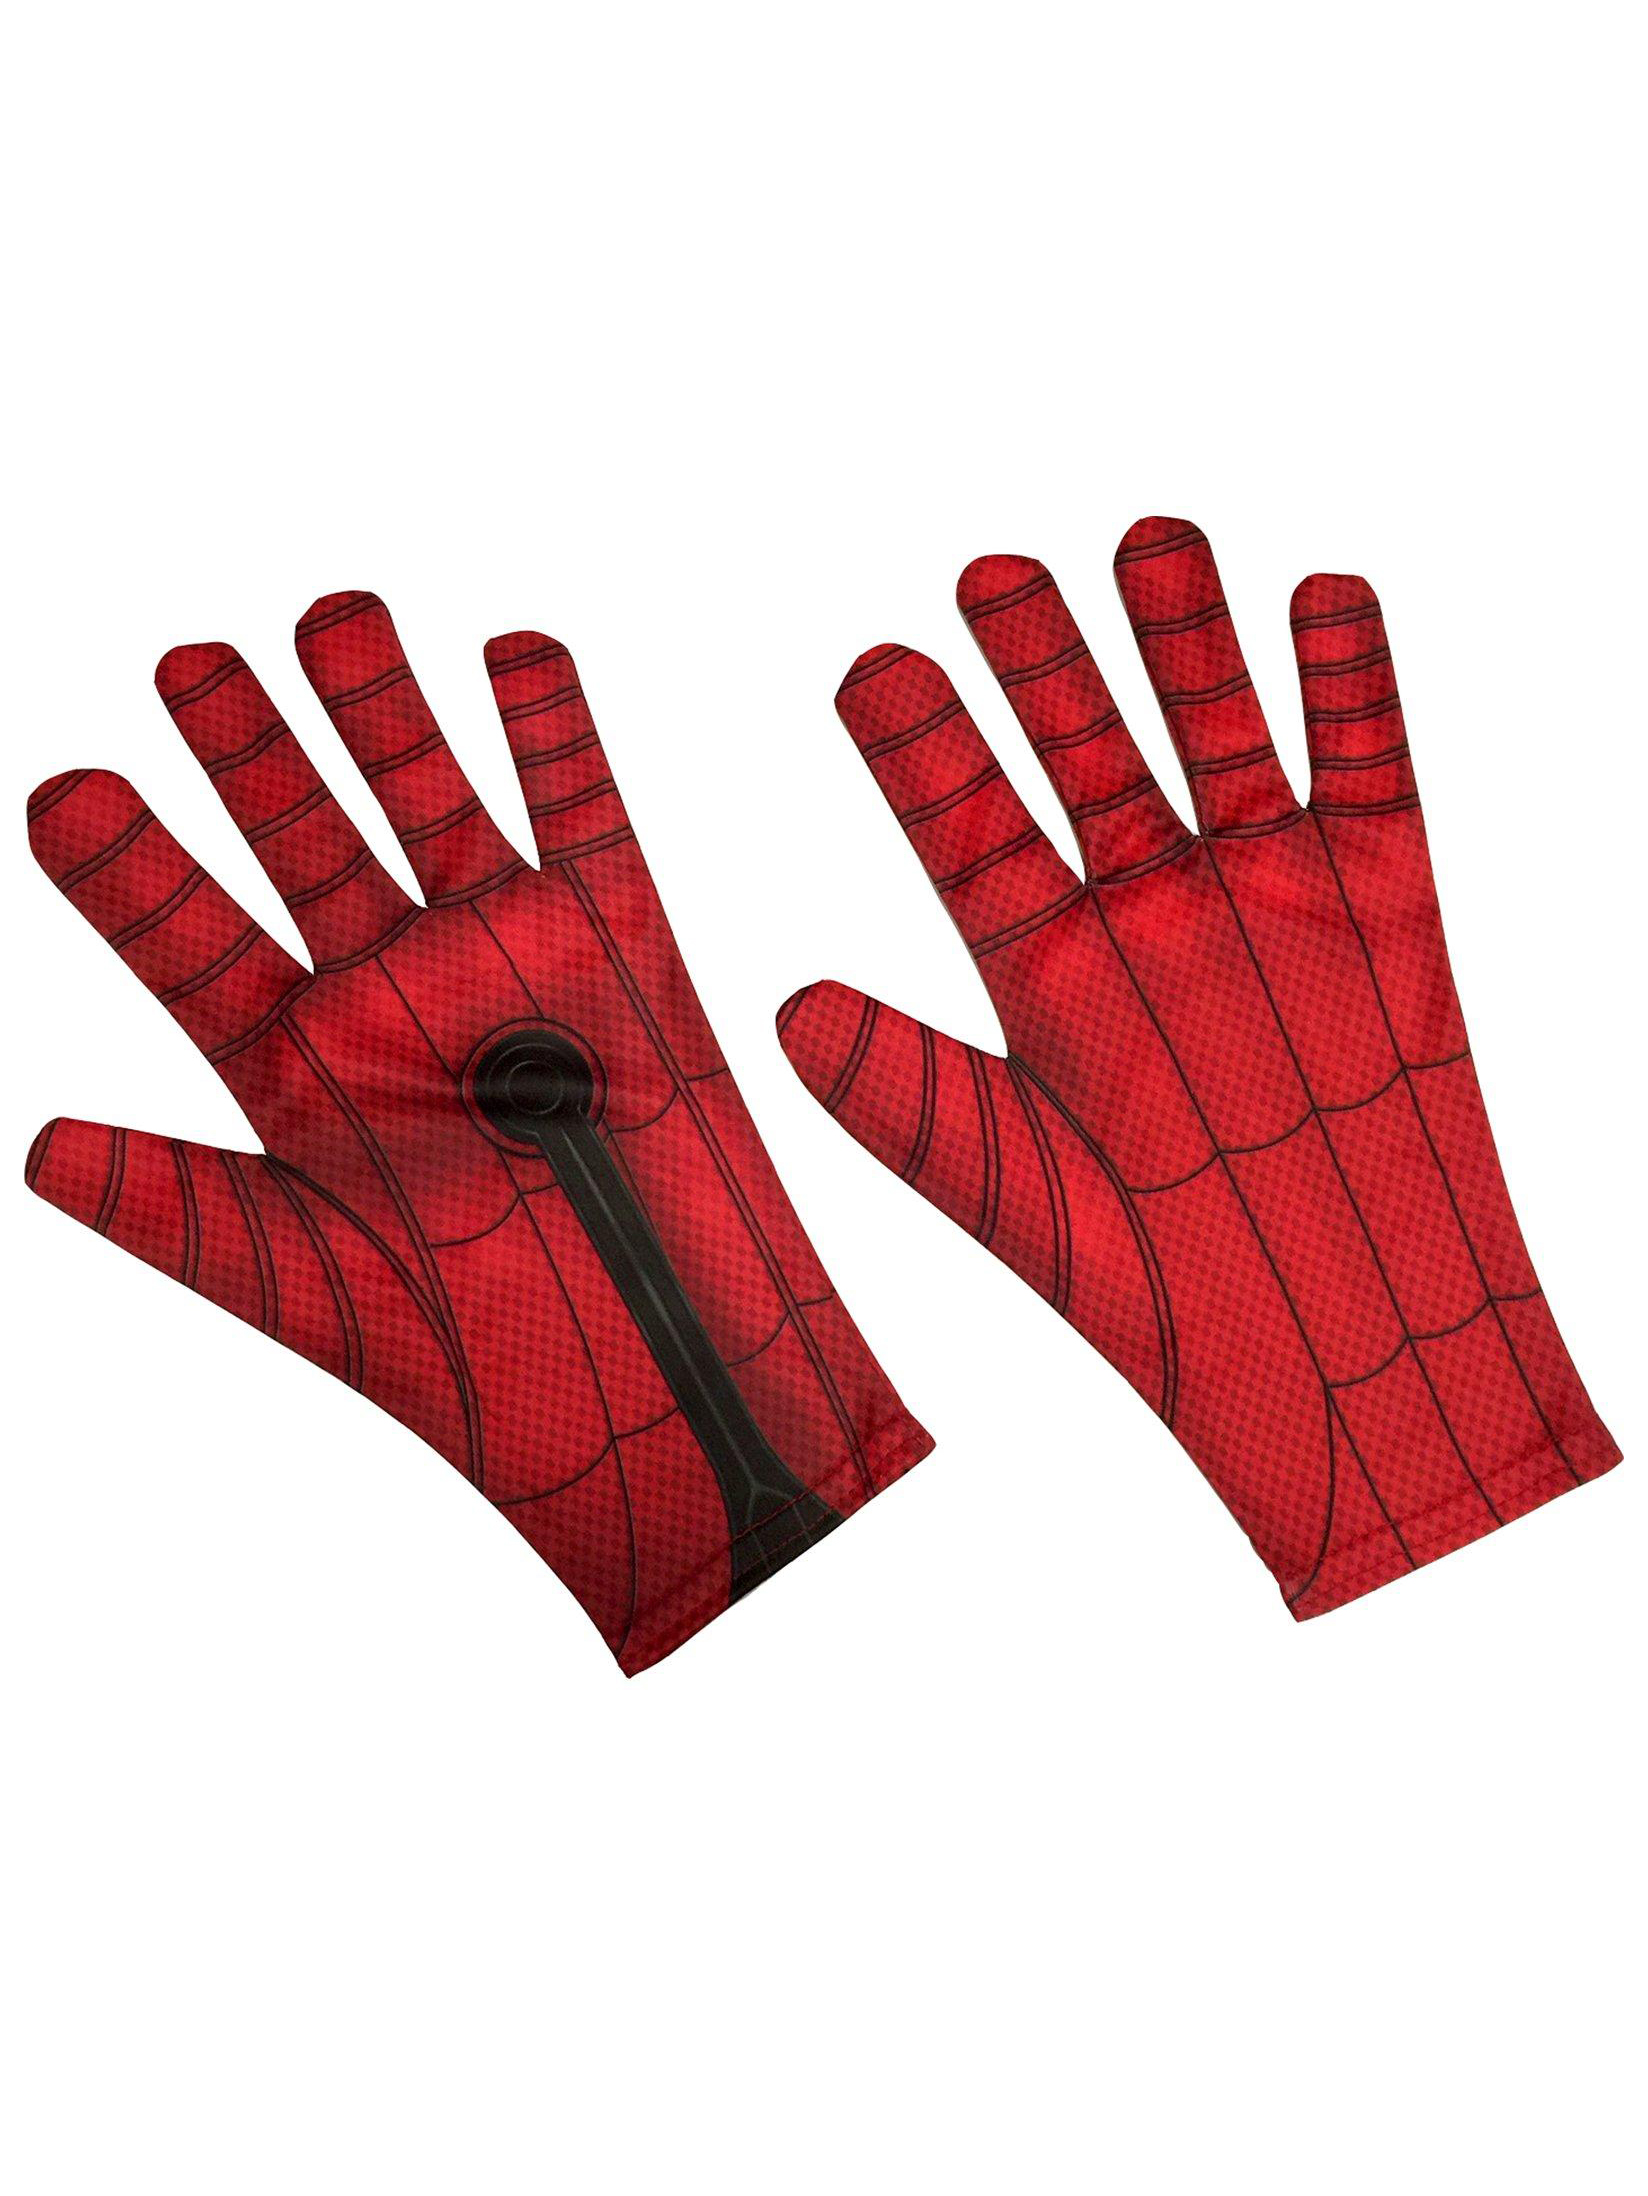 Spider-Man Homecoming - Spider-Man Child Gloves 34486R